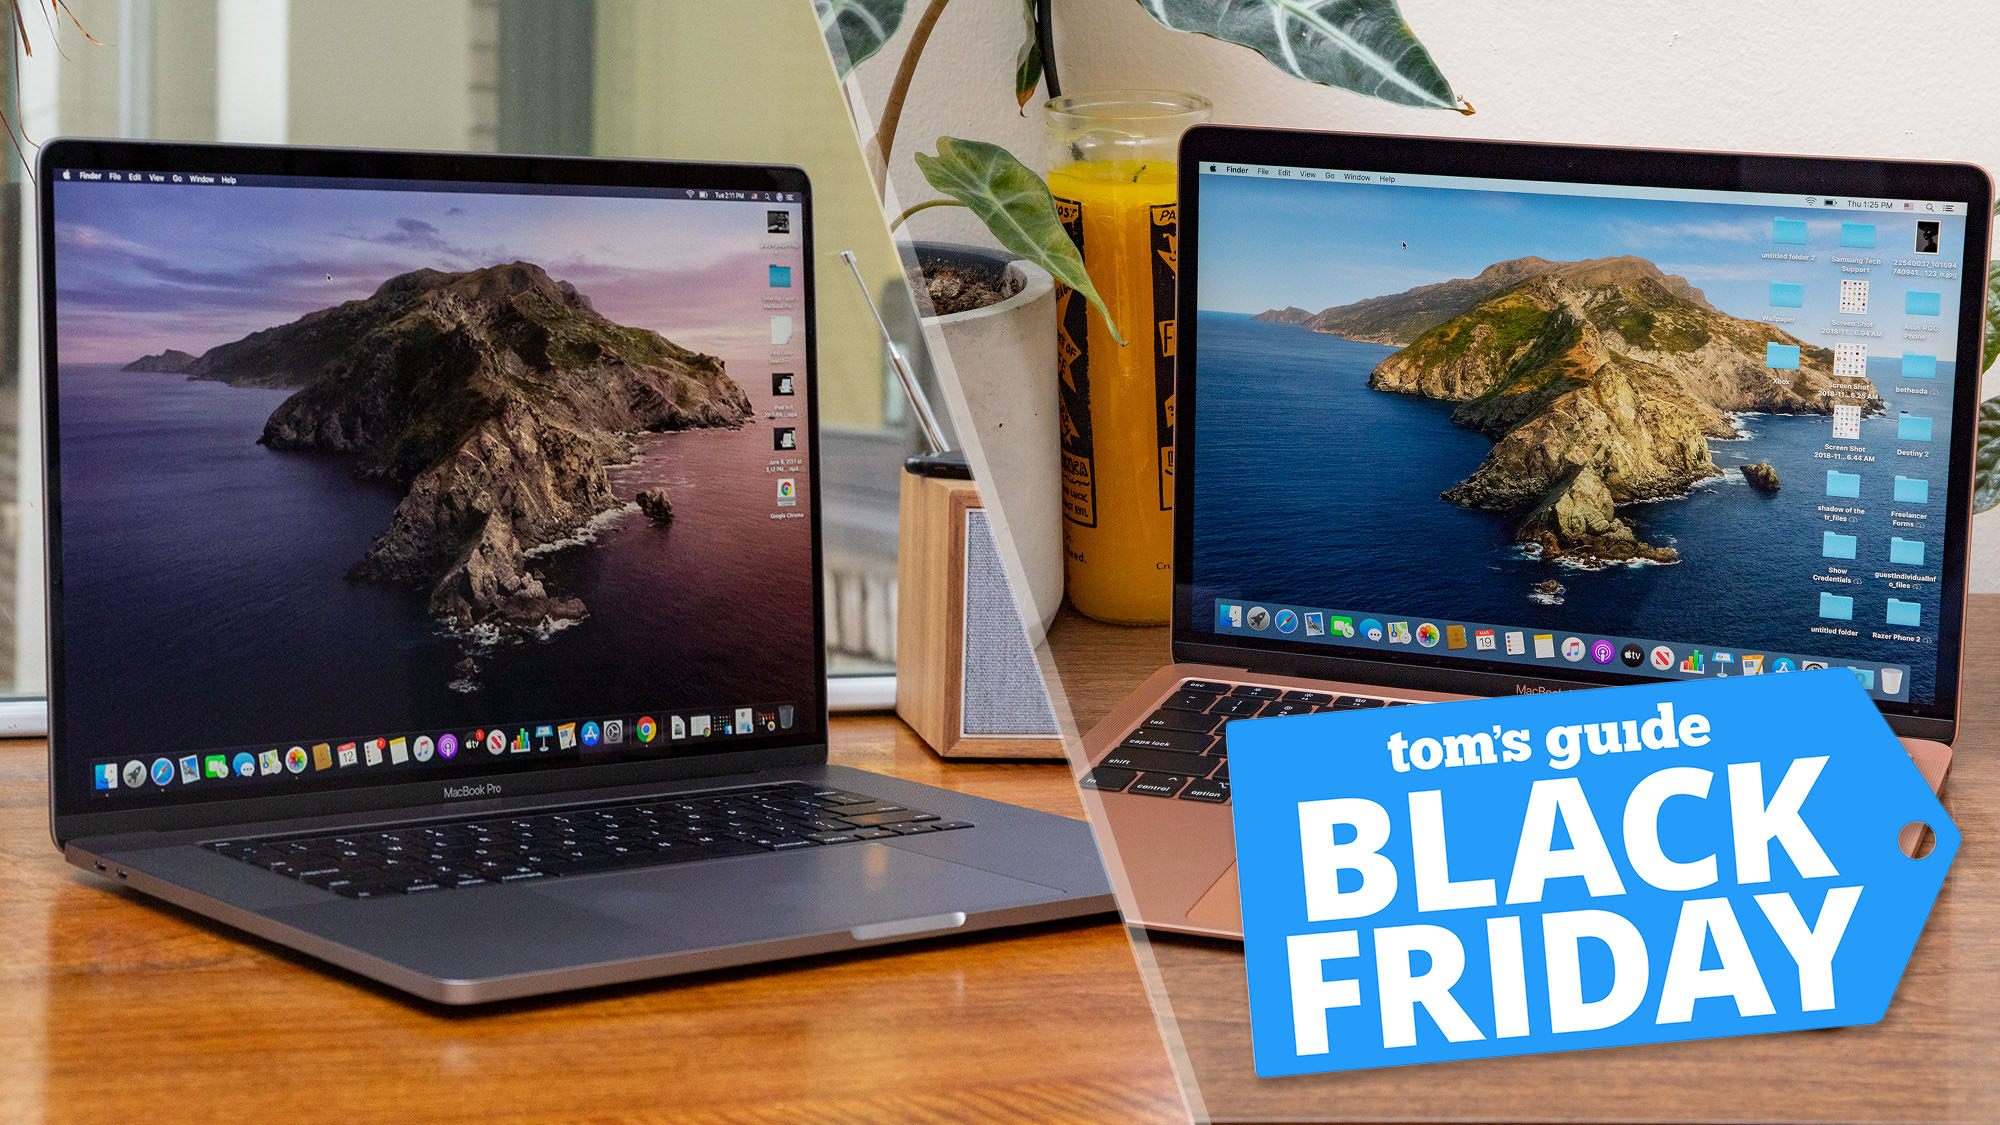 Black Friday Macbook Deals 2020 Macbook Pro And Macbook Air Deals Tom S Guide